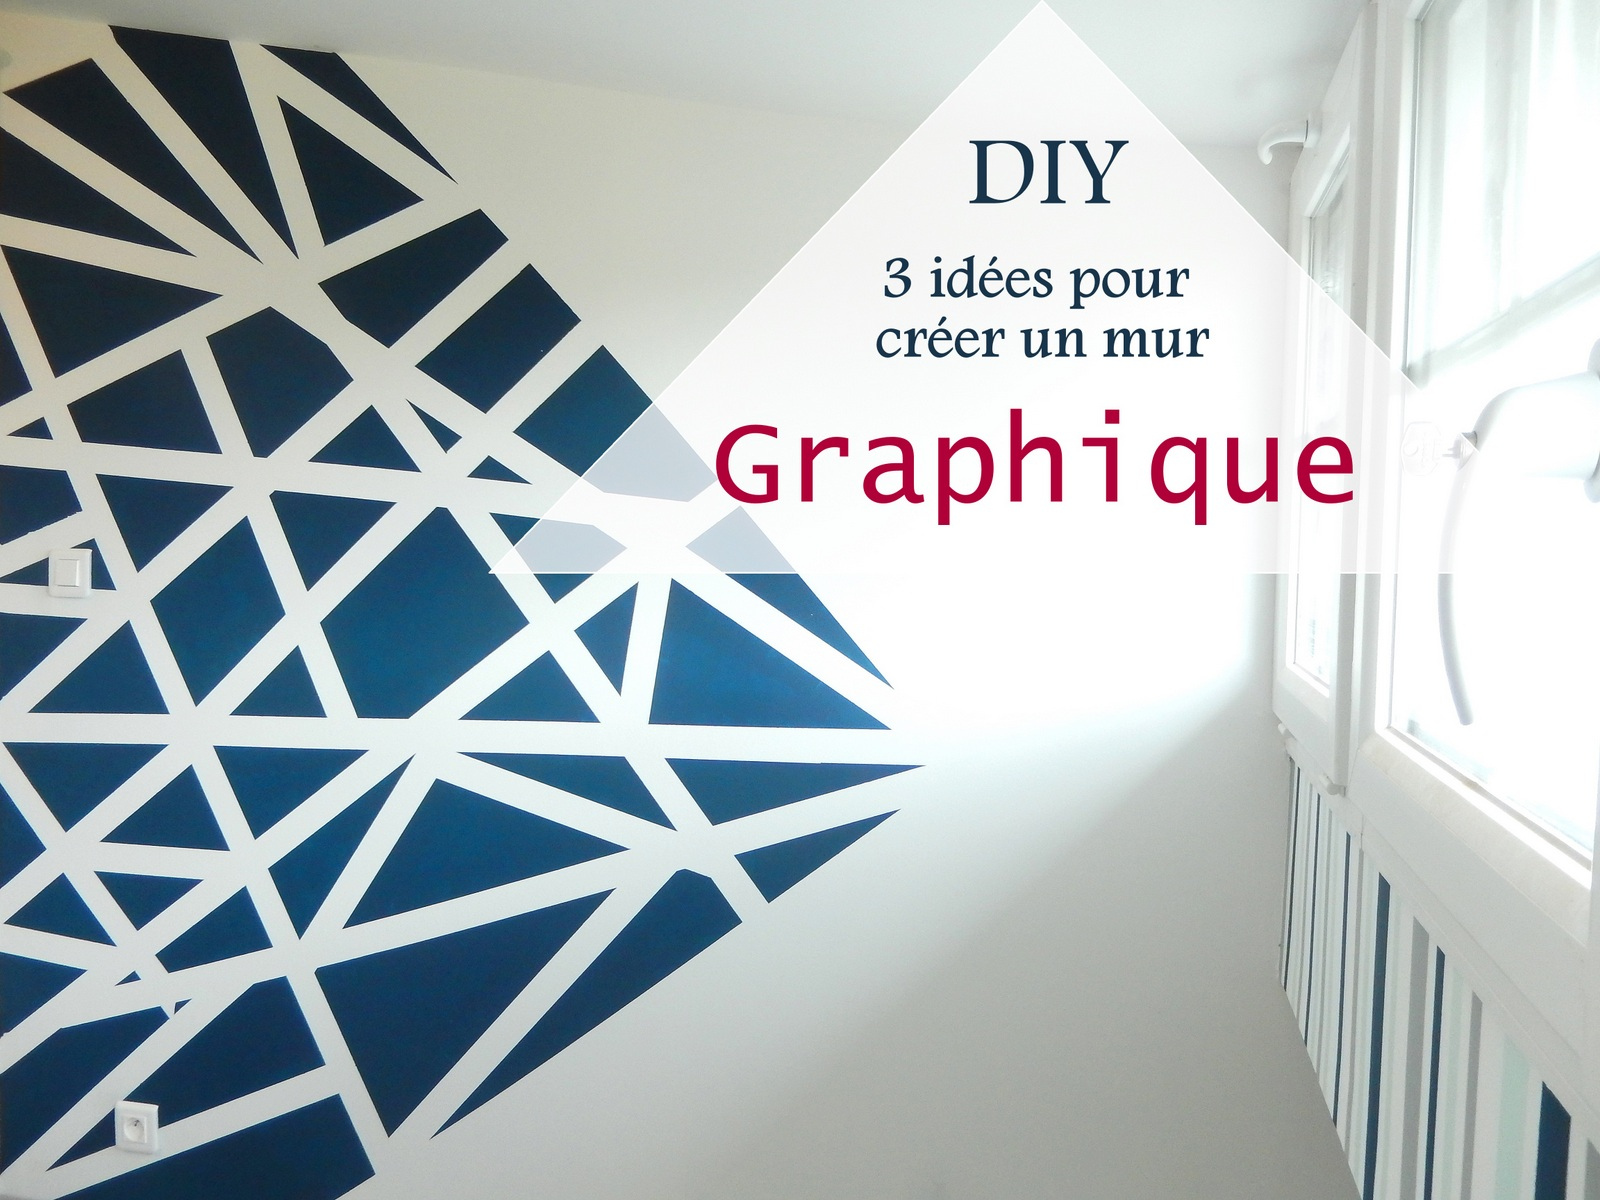 diy 3 id es pour cr er un mur graphique mon carnet d co diy organisation id es rangement. Black Bedroom Furniture Sets. Home Design Ideas